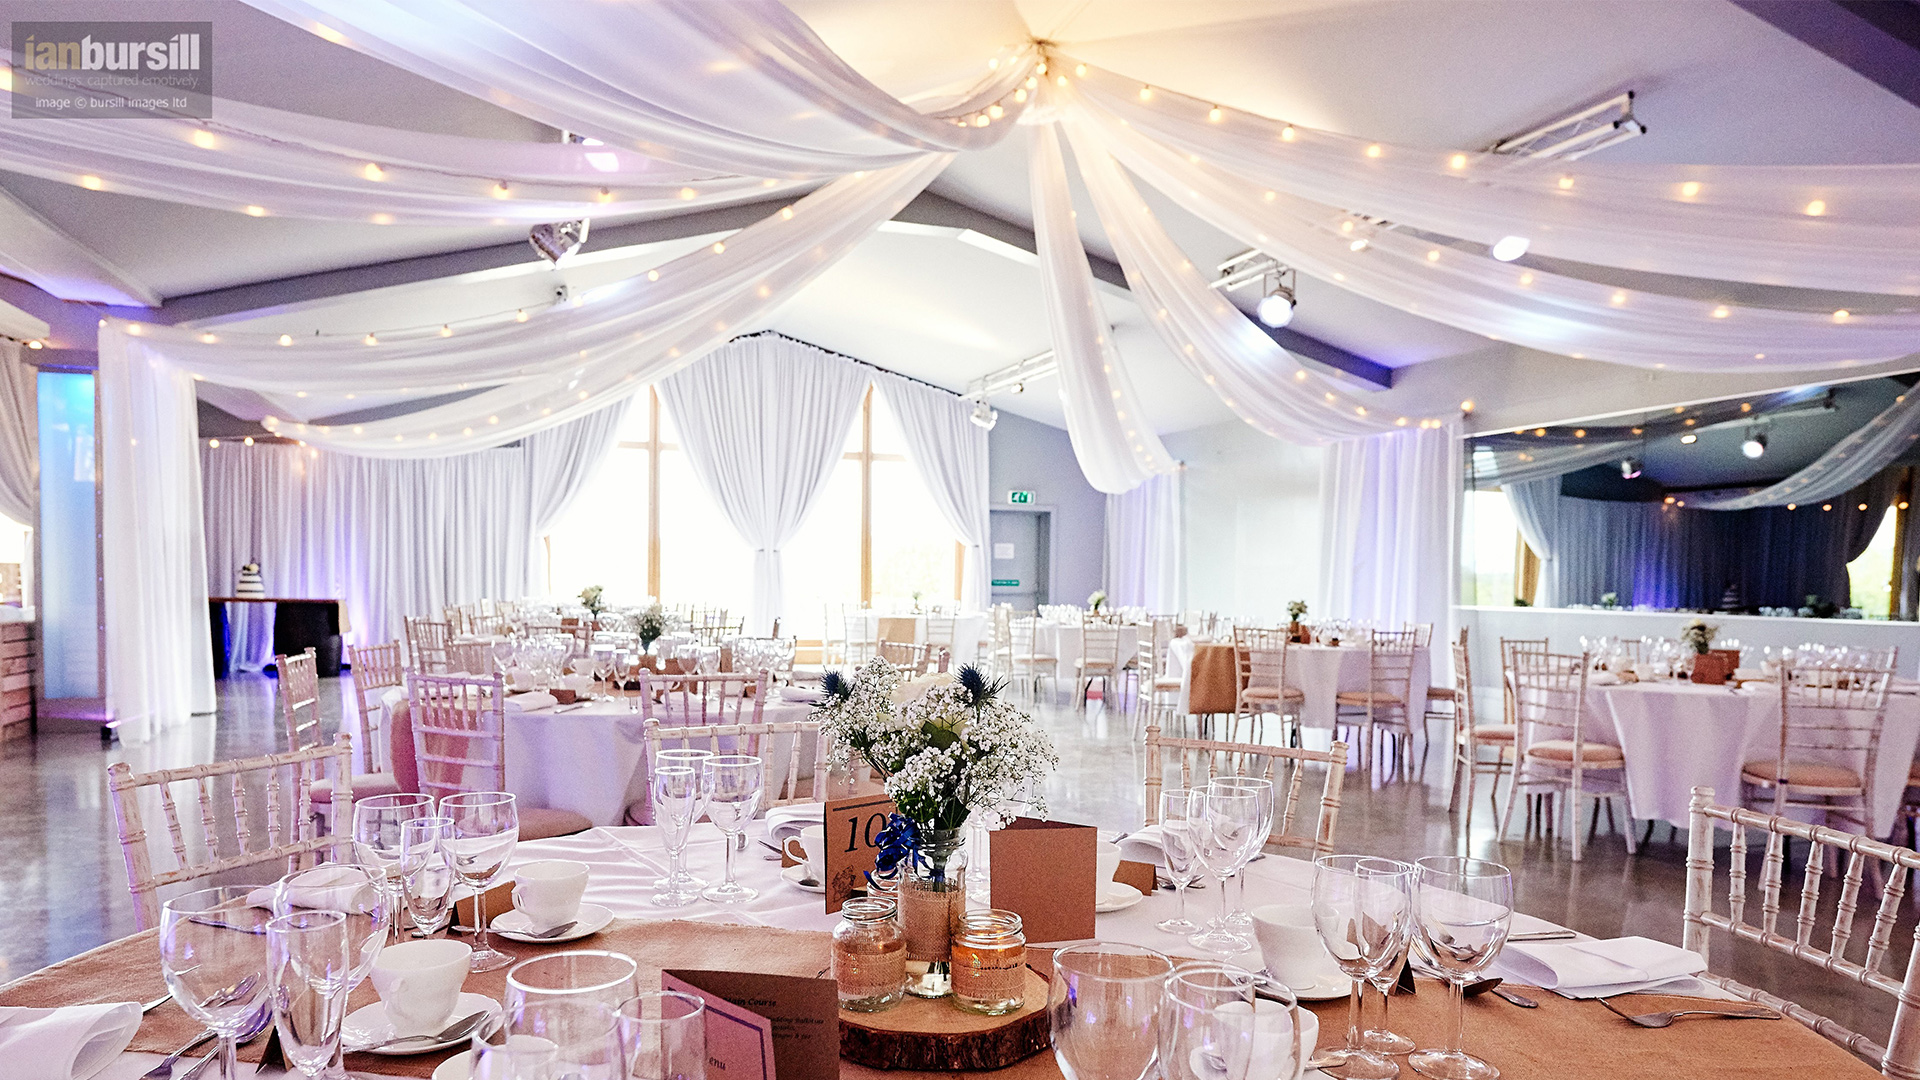 More Weddings ceiling drapes with festoon lighting at ladywood estate